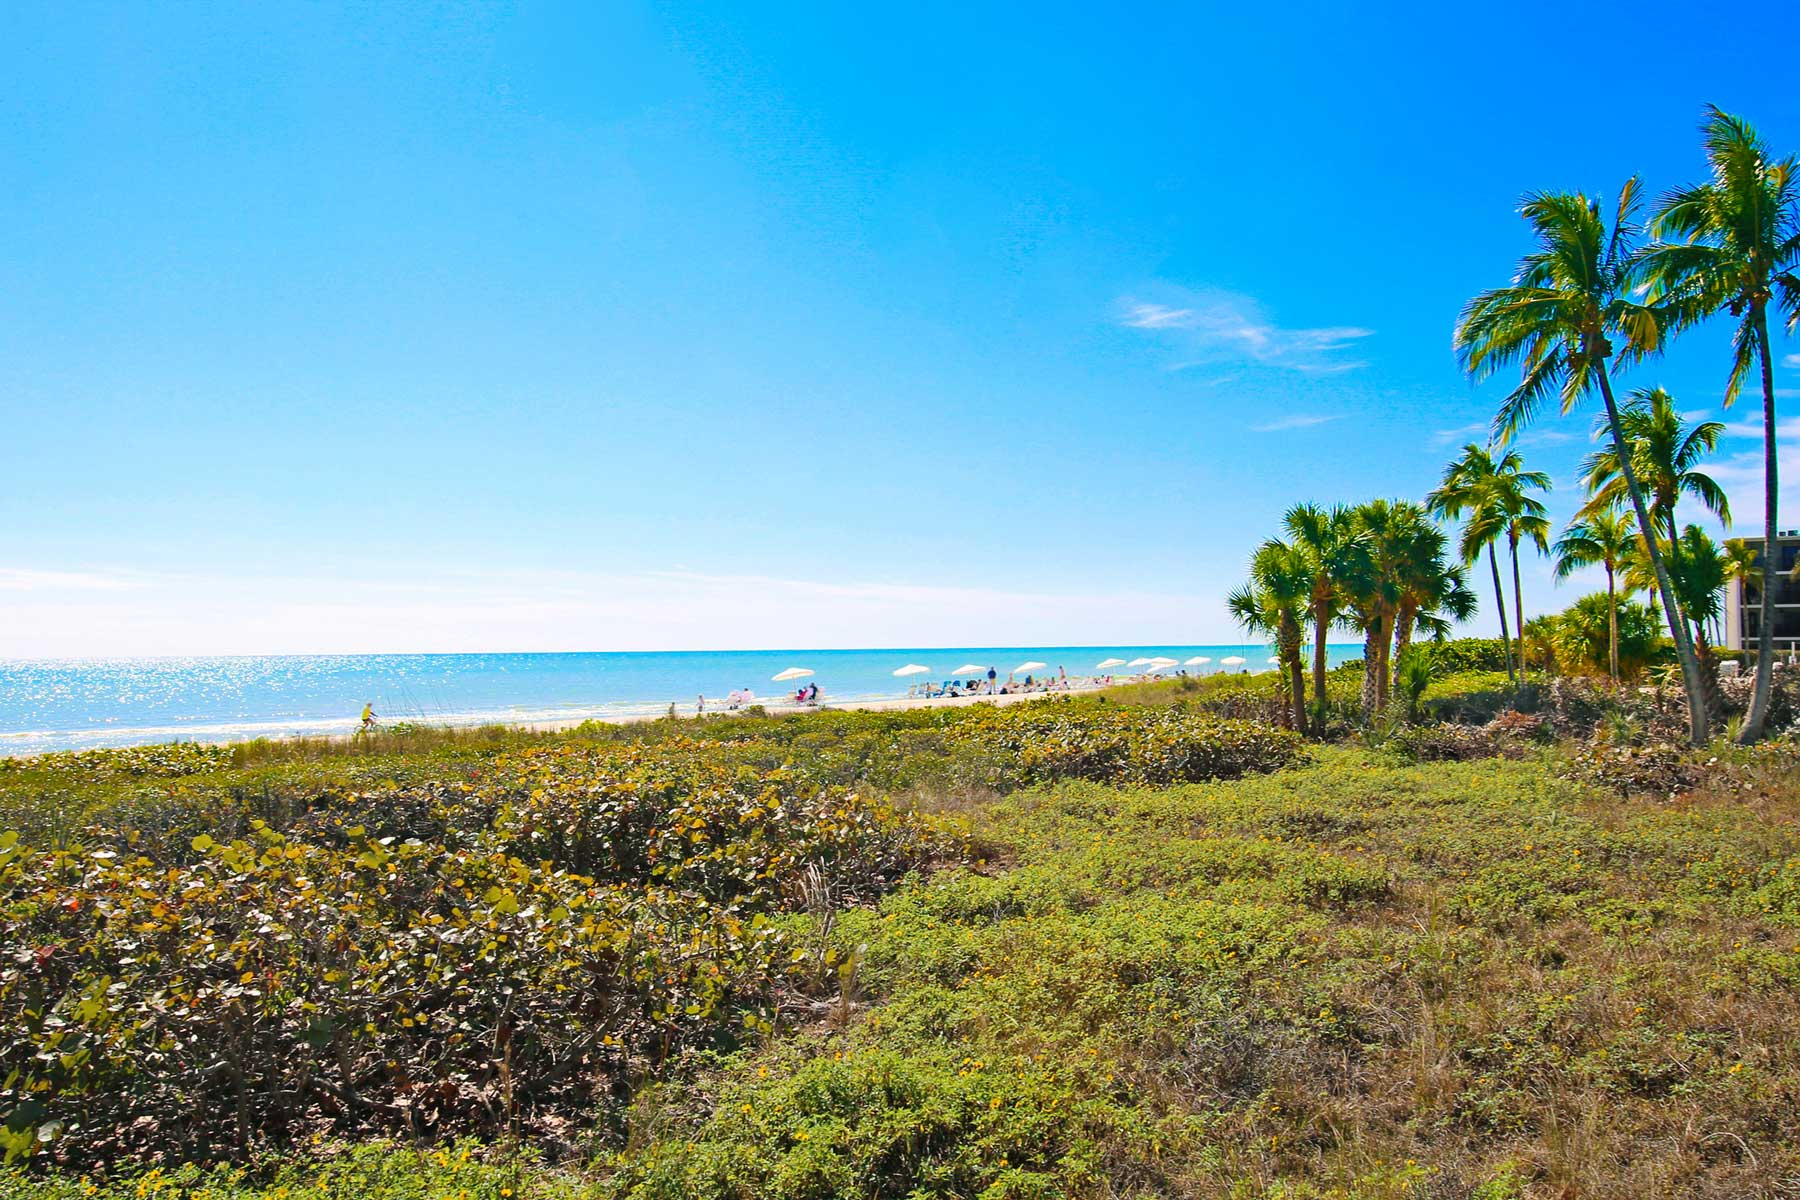 Beach with greenery and palm trees on Sanibel Island in Florida